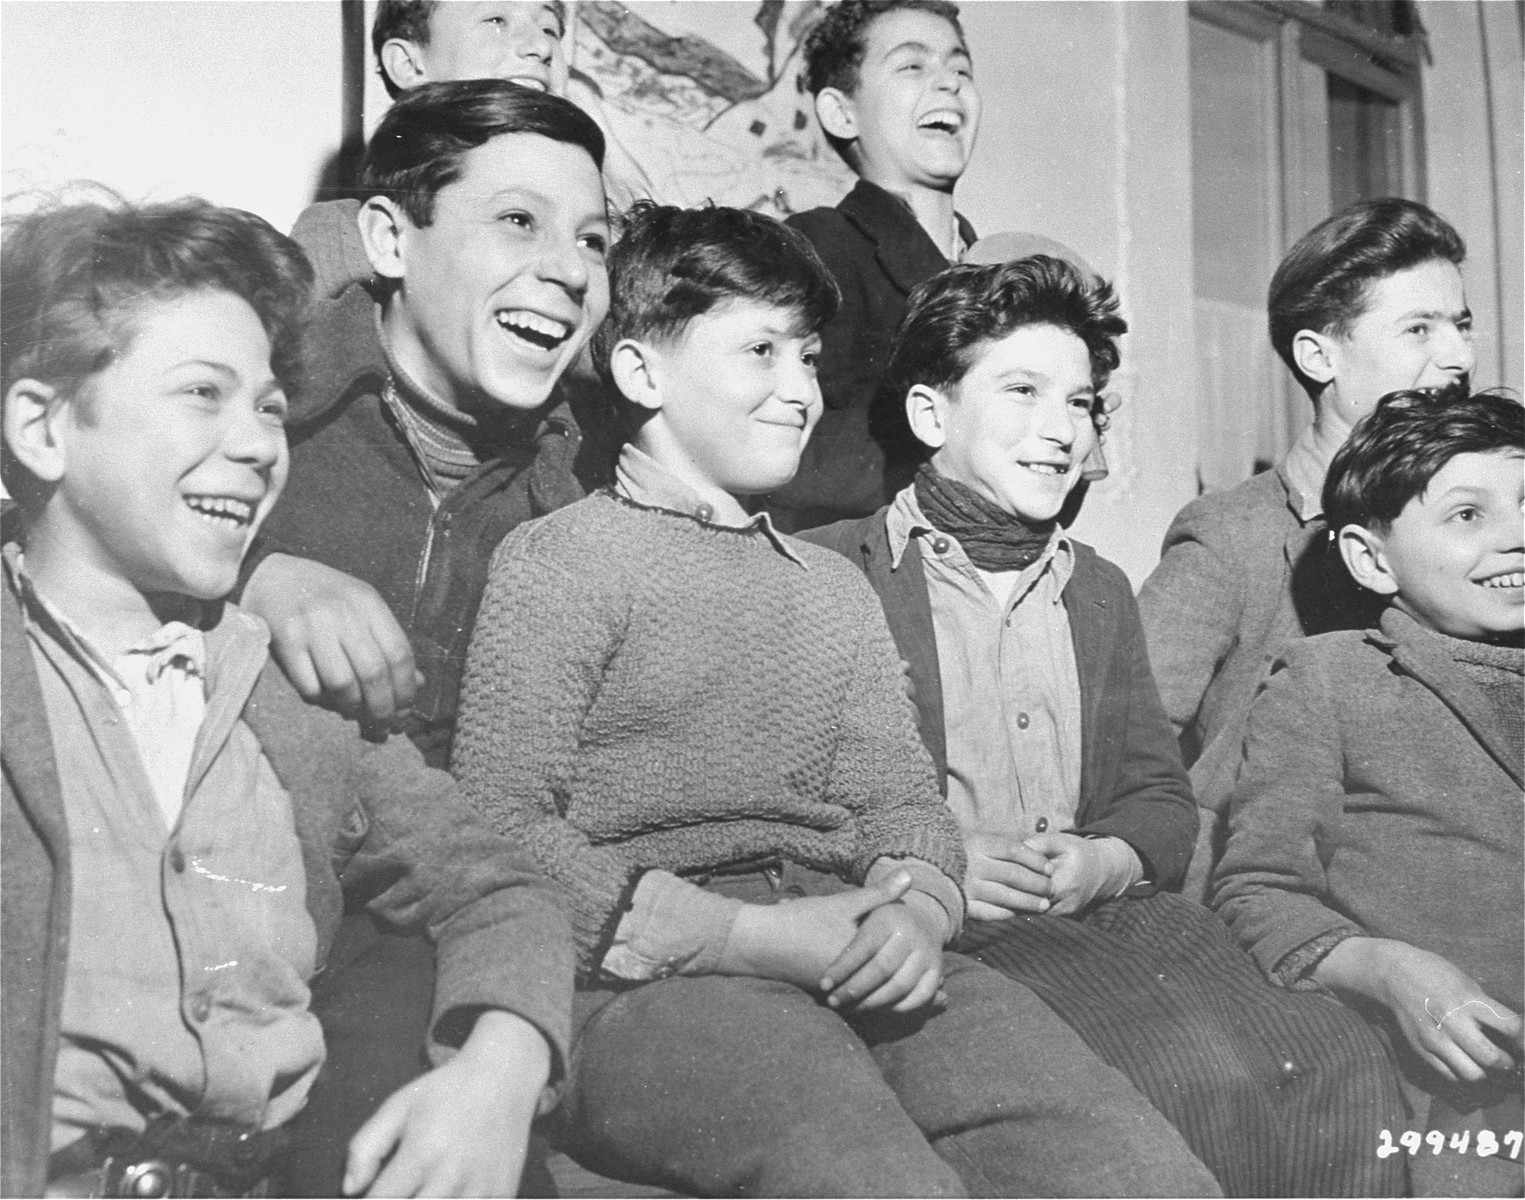 Jewish orphans laugh during a performance at the Lindenfels displaced person's center for children.